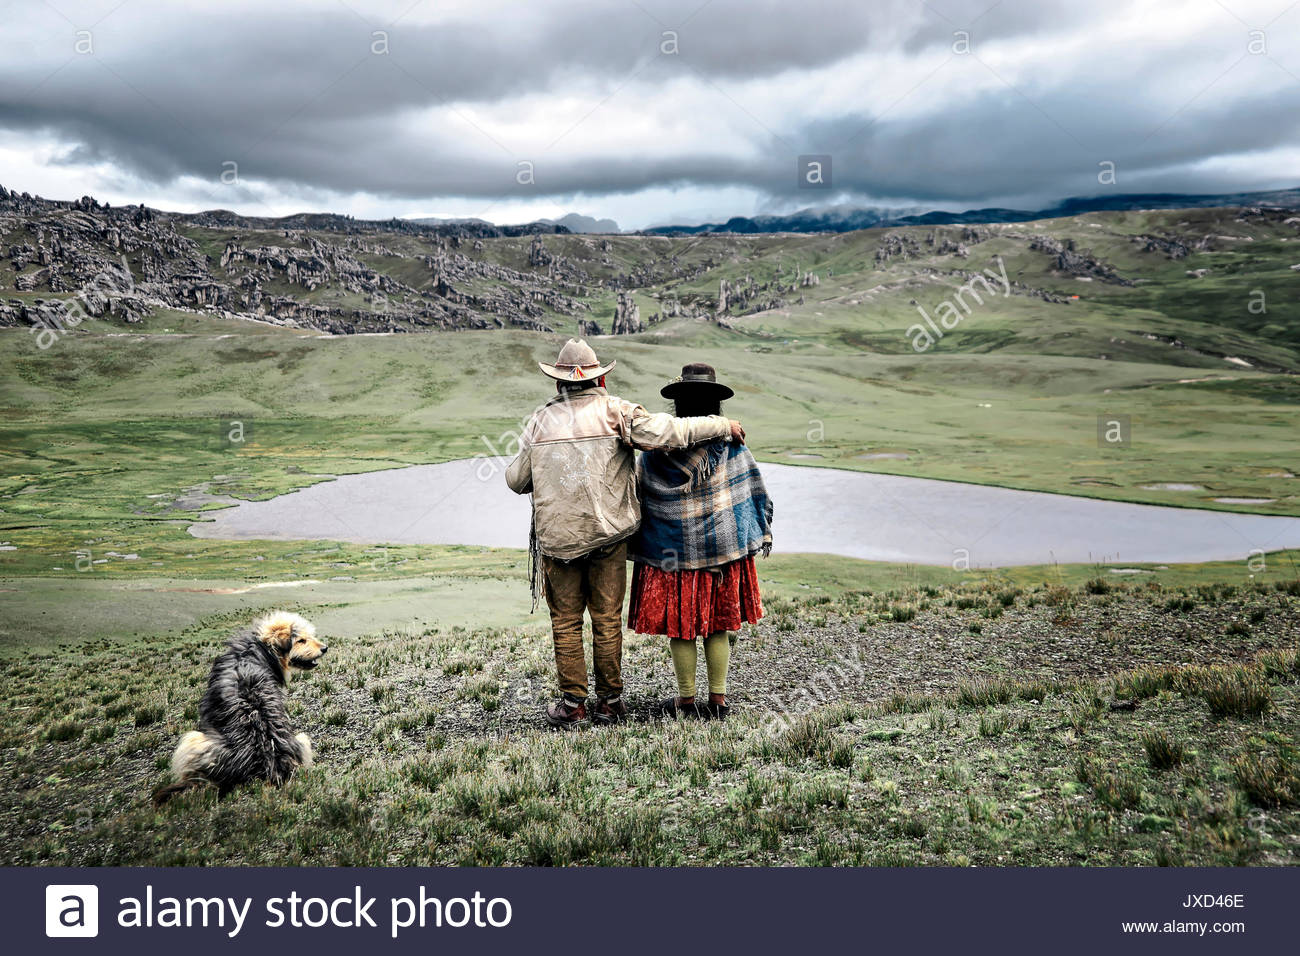 Ayamara indigenous woman and man shepherding at Peruvian highlands with a dog Stock Photo